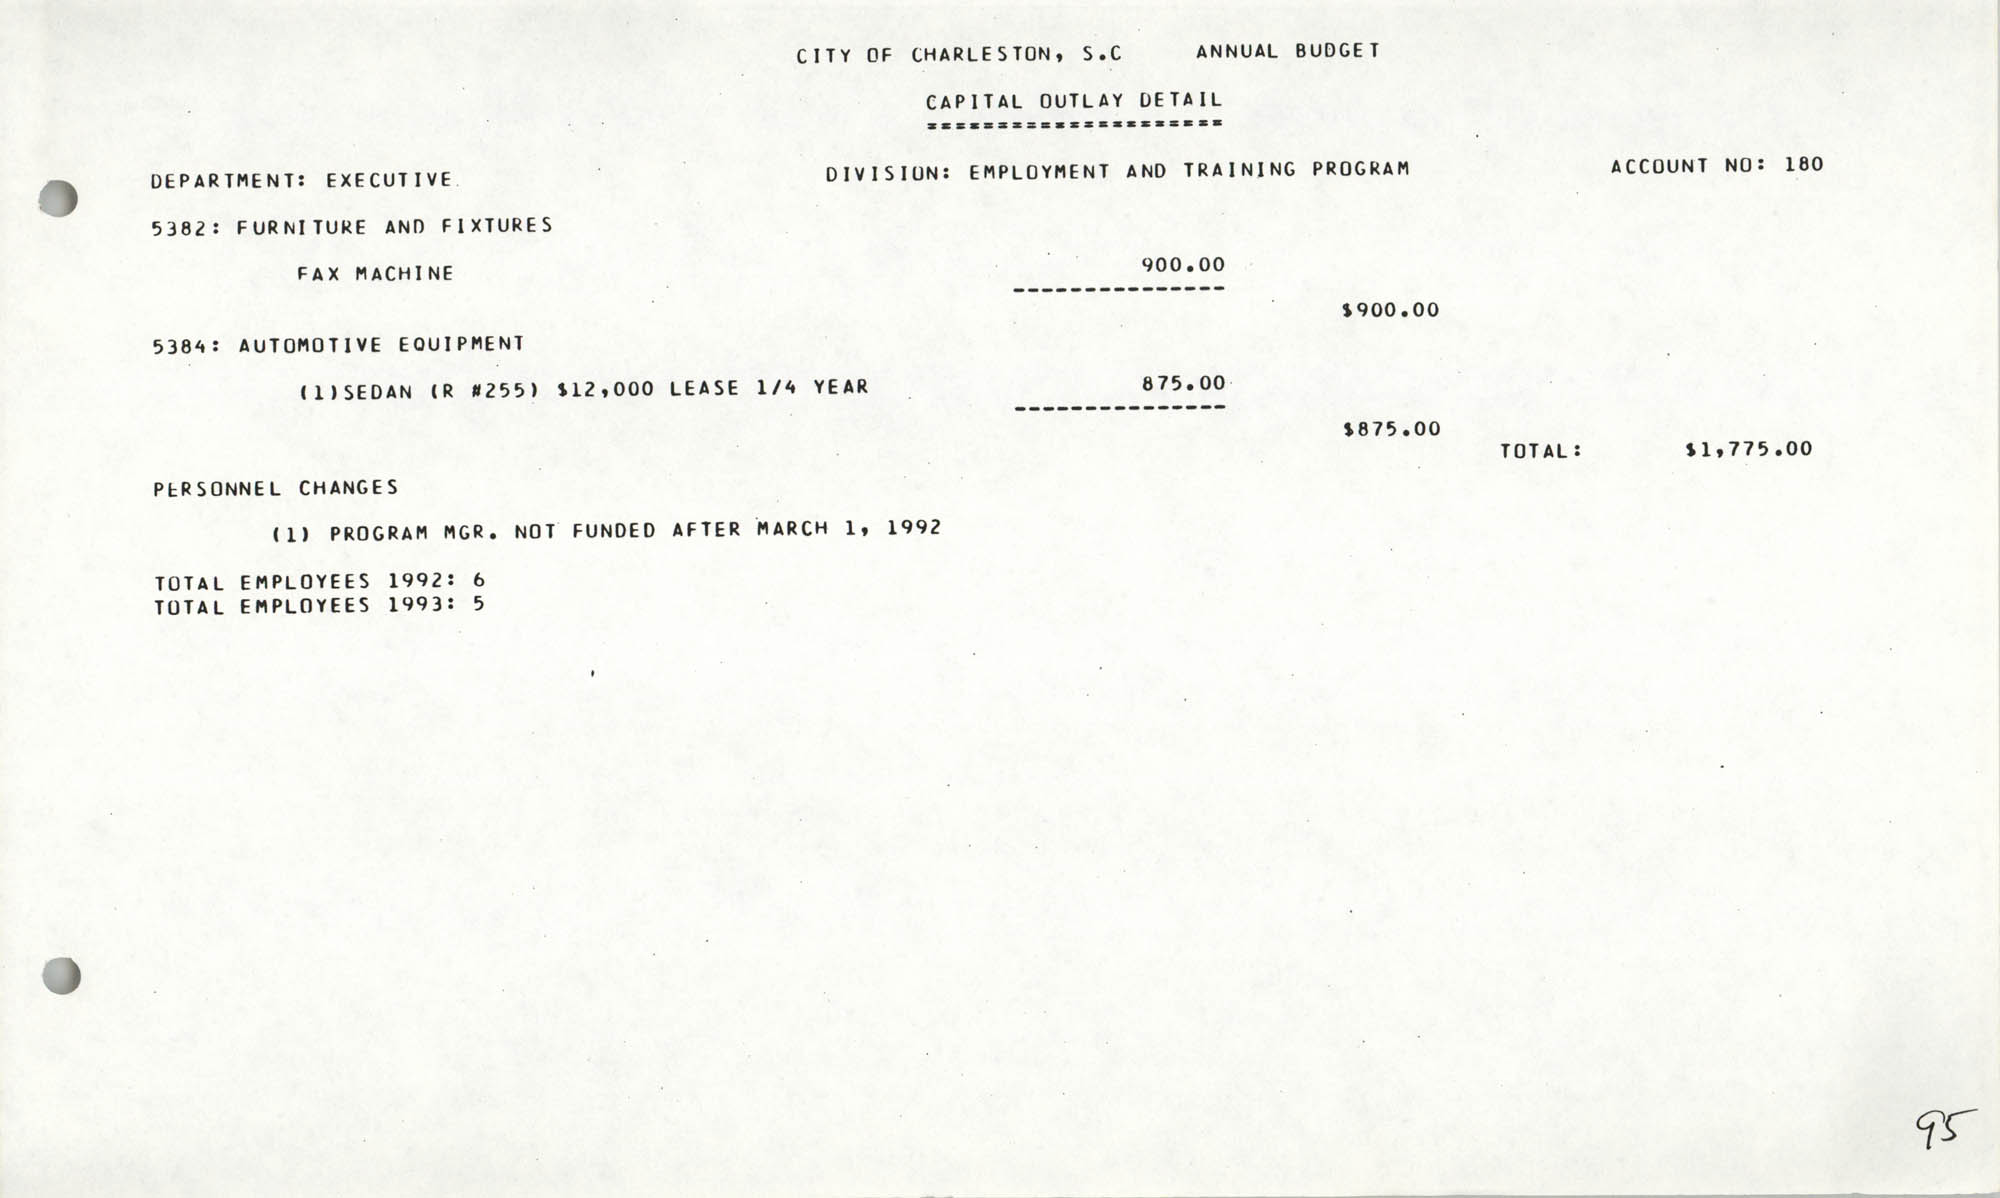 The City Council of Charleston, South Carolina, 1993 Budget, Page 95